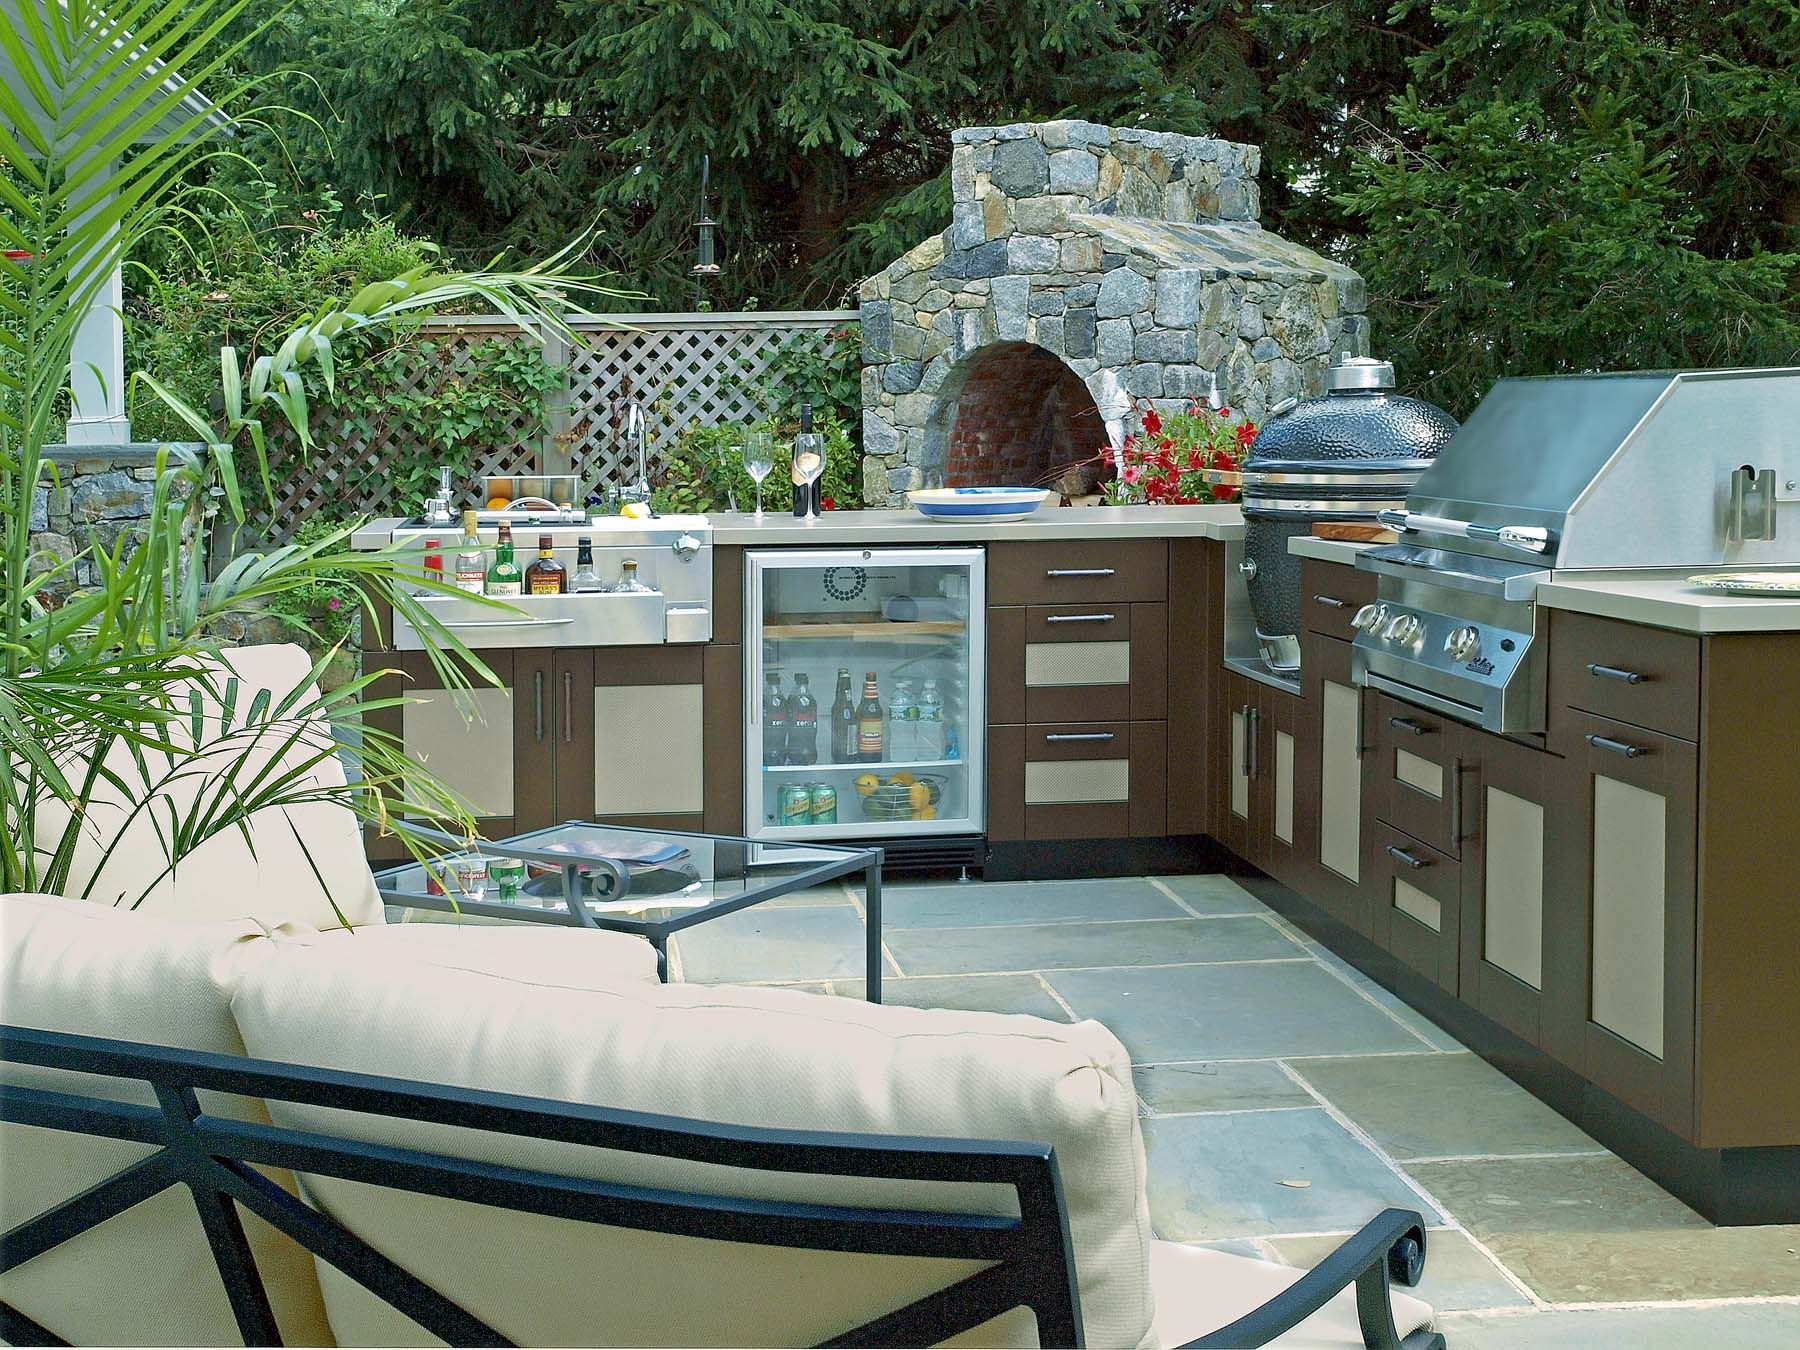 pizza oven | outdoor kitchen | Pinterest | Brown jordan, Kitchen ...